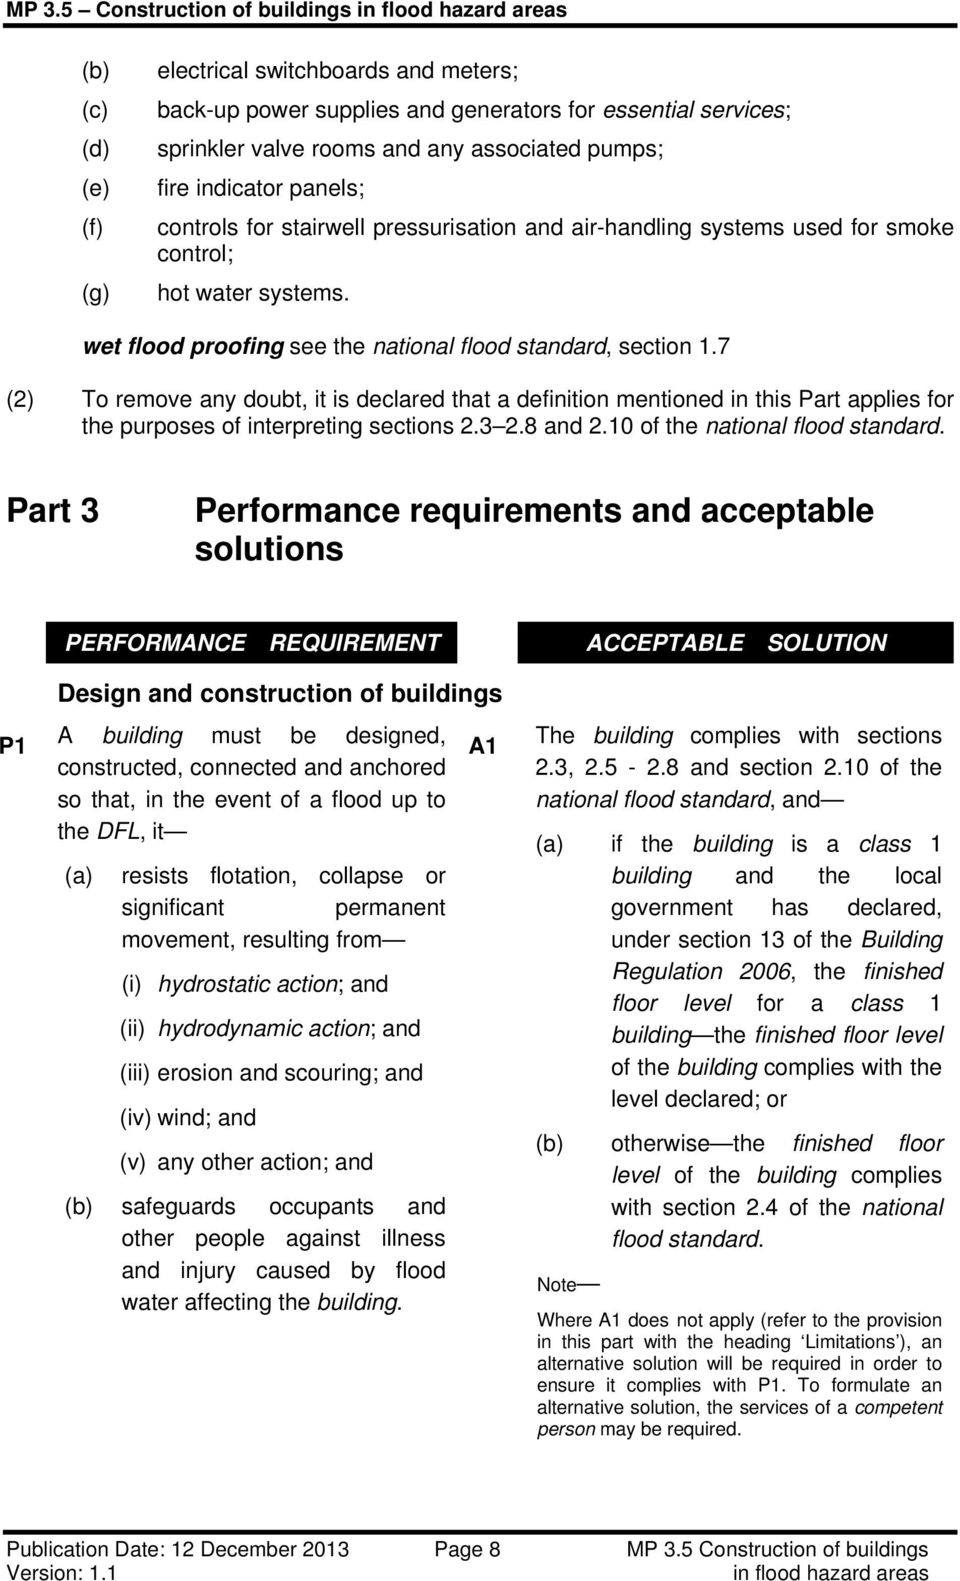 7 (2) To remove any doubt, it is declared that a definition mentioned in this Part applies for the purposes of interpreting sections 2.3 2.8 and 2.10 of the national flood standard.